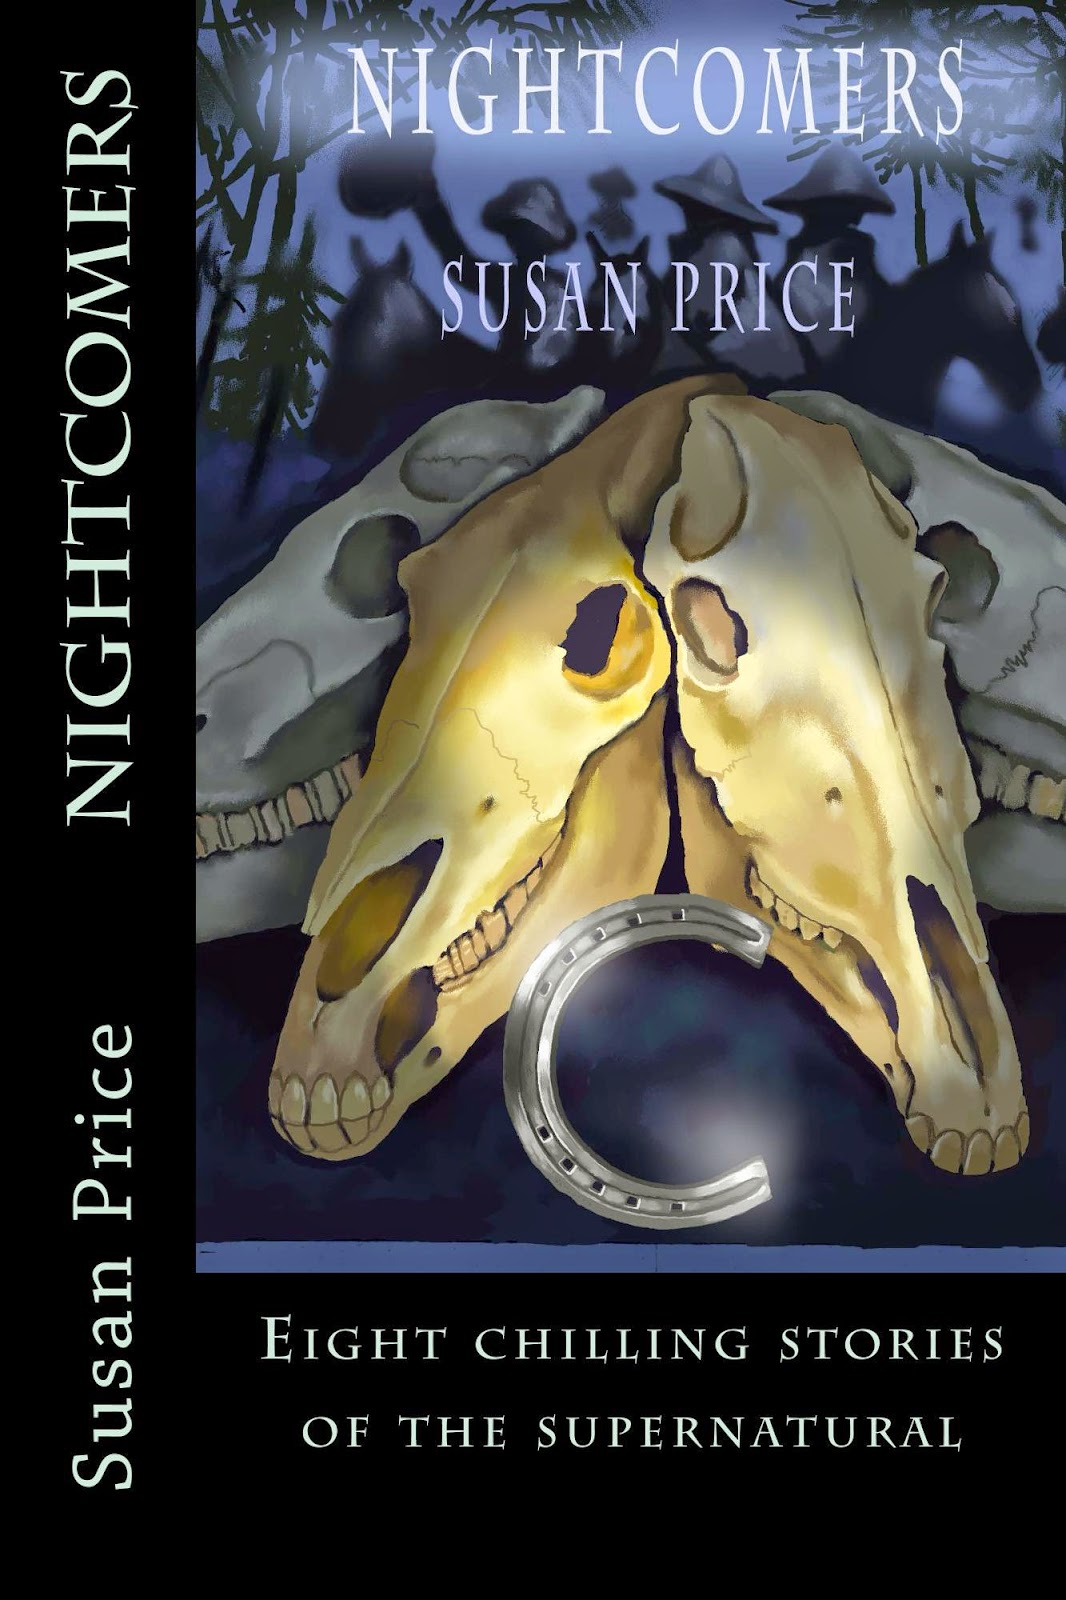 http://www.amazon.co.uk/Nightcomers-Susan-Prices-Haunting-Stories/dp/0992820456/